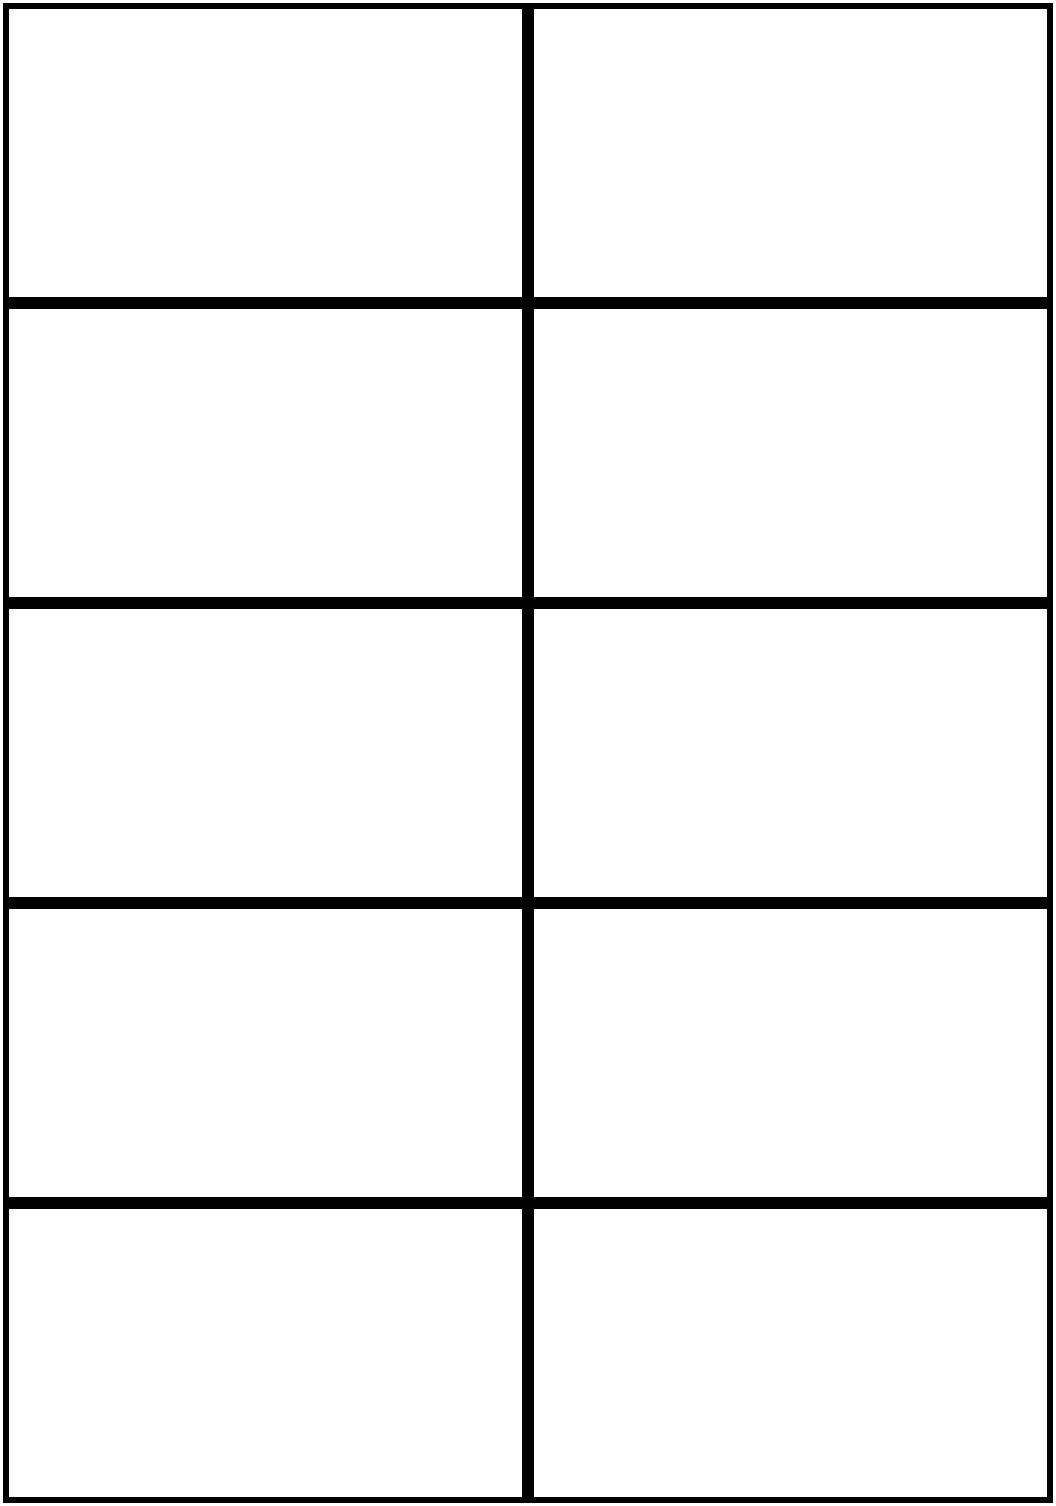 Image Result For Flashcards Template Word | Worksheets | Free - Free Printable Business Cards